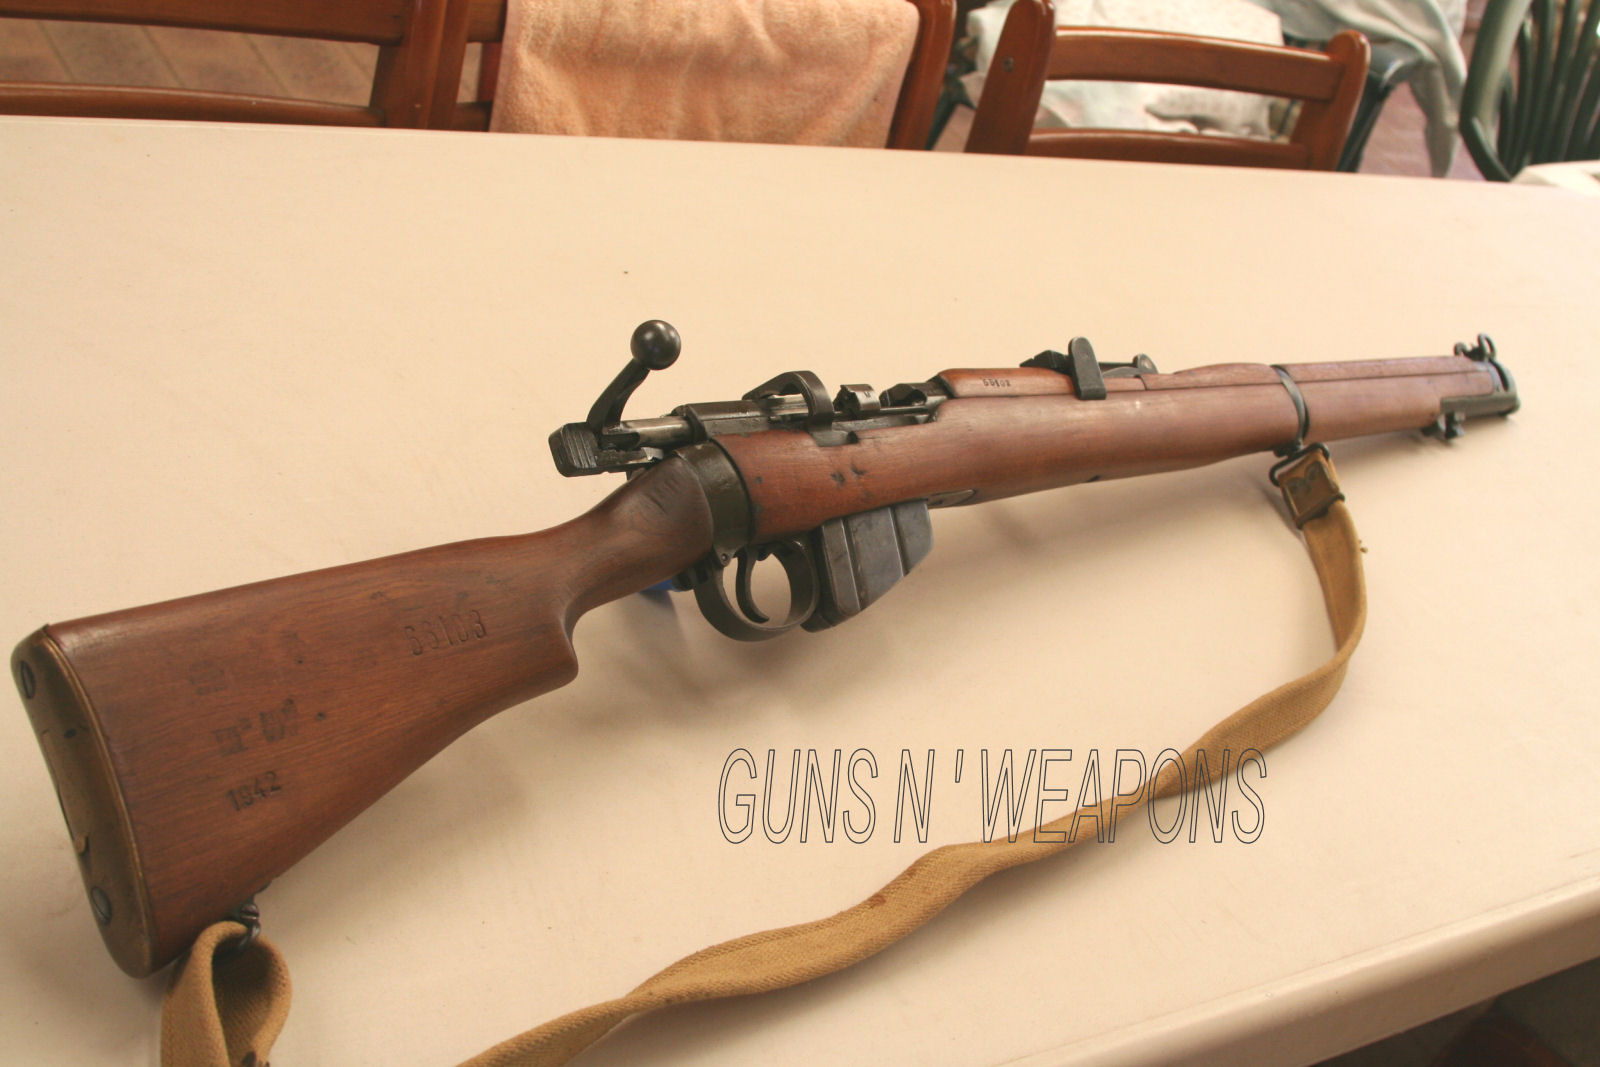 Lithgow No1 III* SMLE circa 1942 303 Bolt Action Rifle for sale